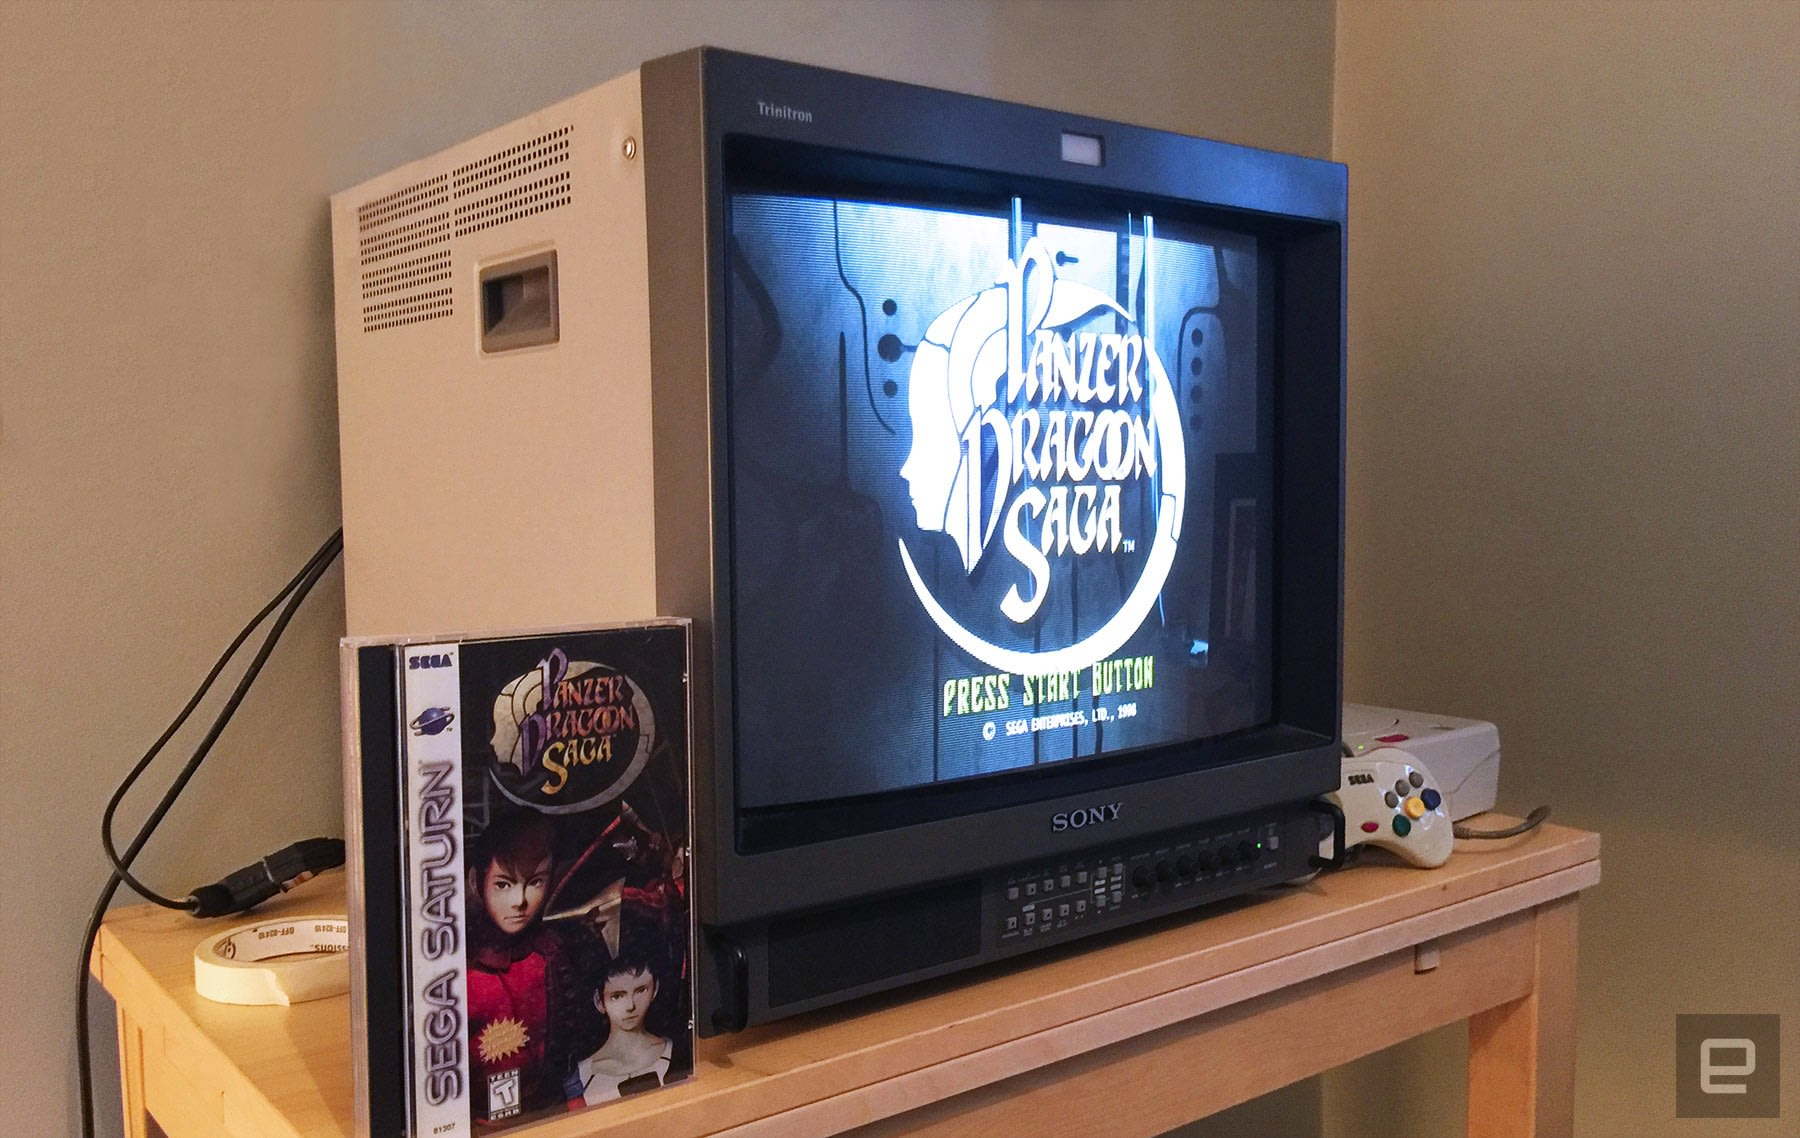 My pointless quest to achieve perfect retro console fidelity